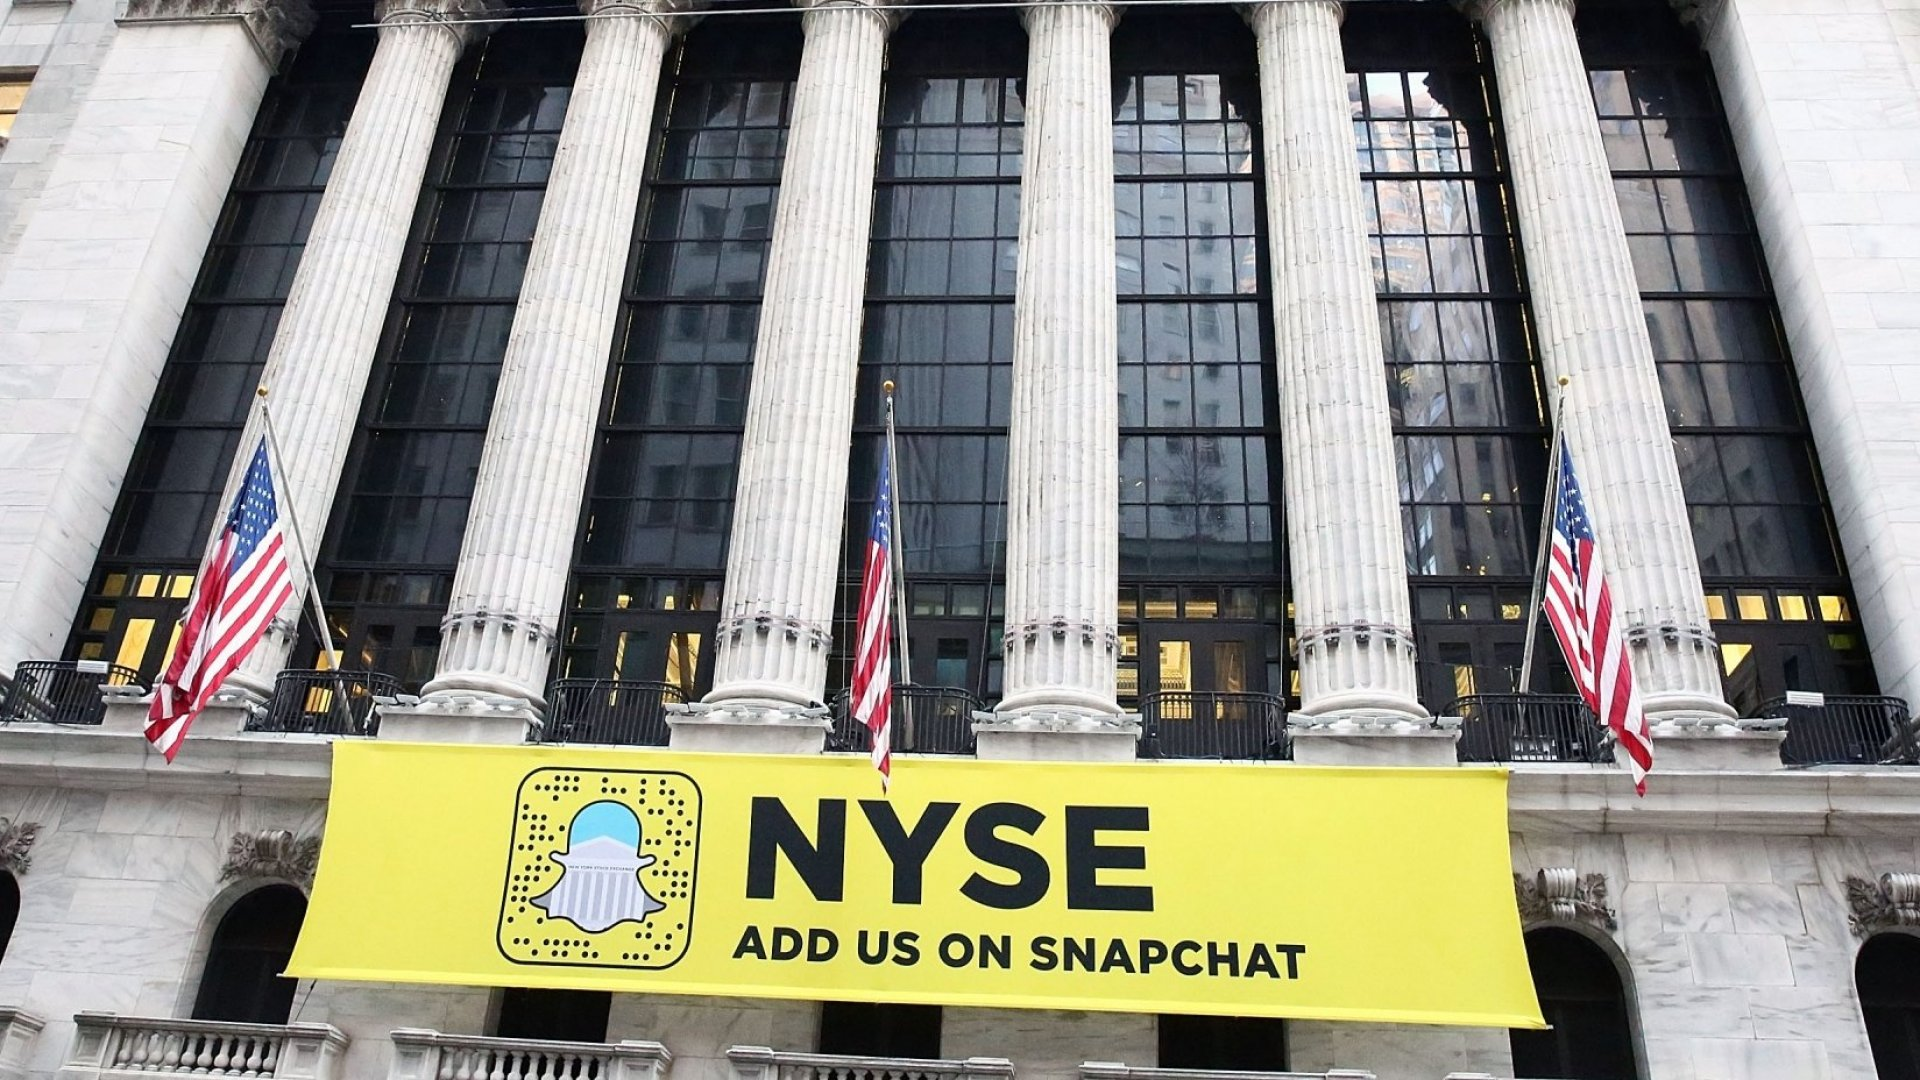 A Snapchat banner hangs from the New York Stock Exchange in Manhattan.